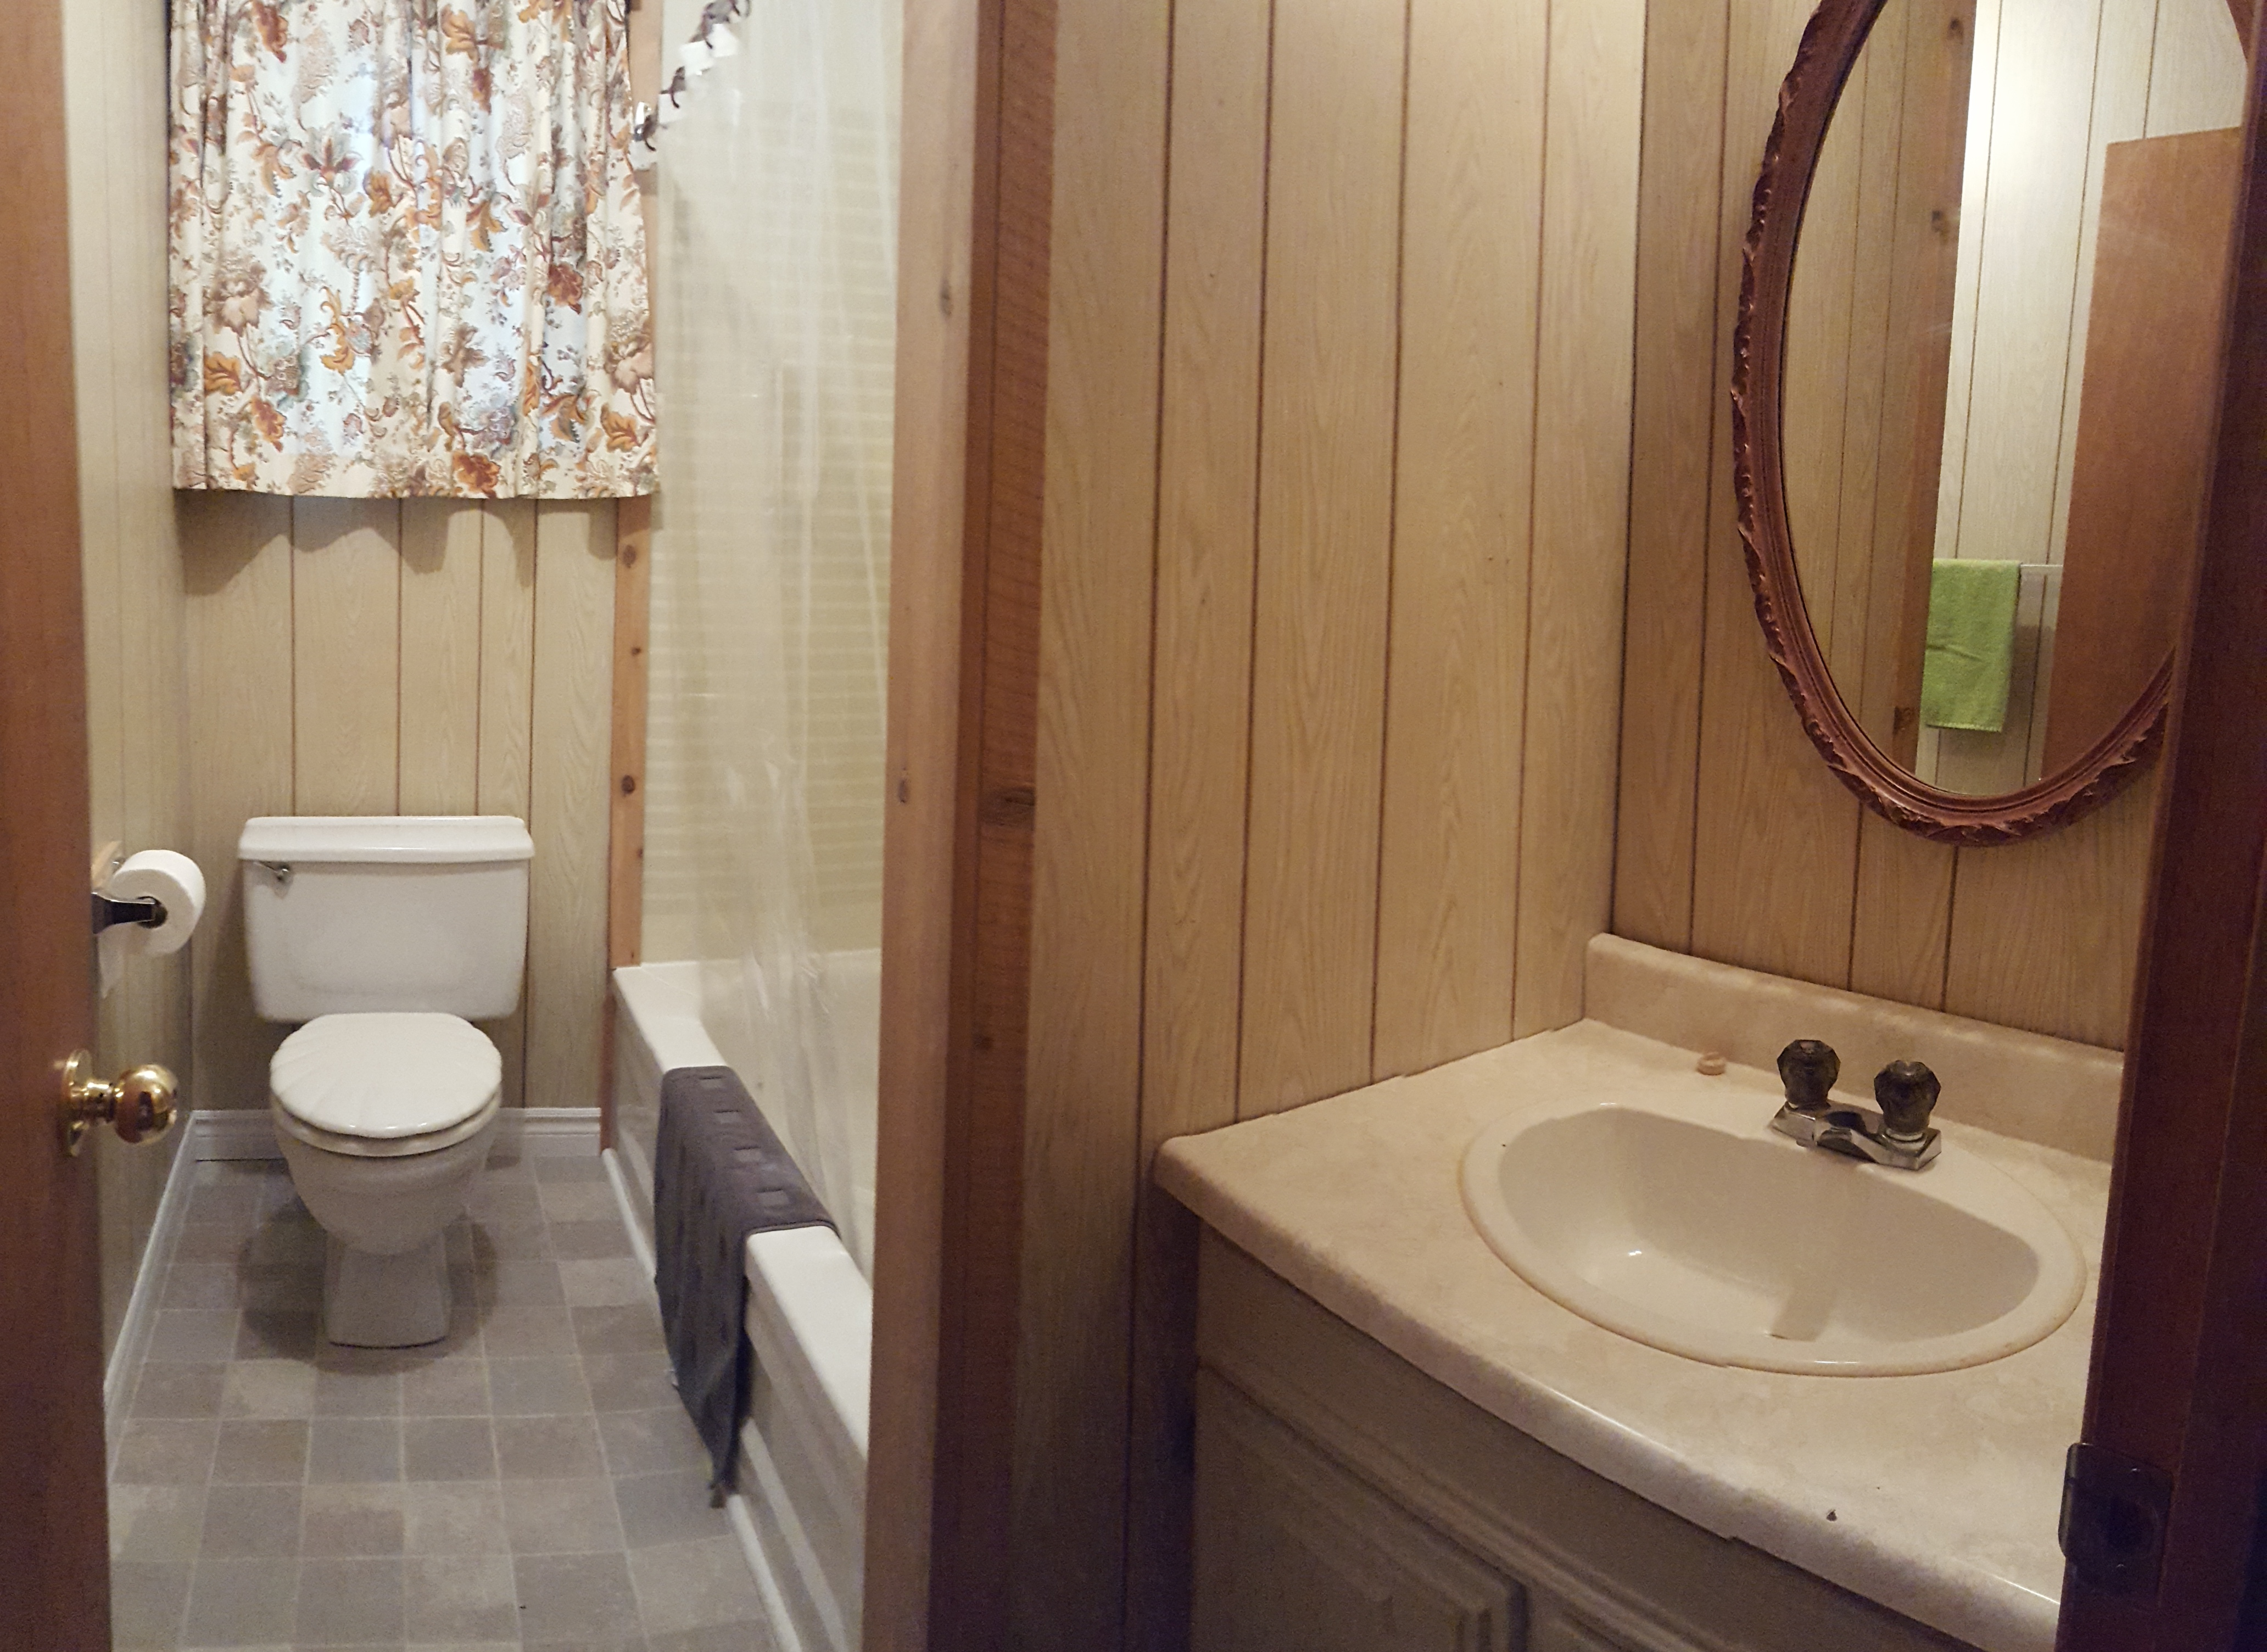 https://0901.nccdn.net/4_2/000/000/076/de9/Cottage-8---bathroom.jpg